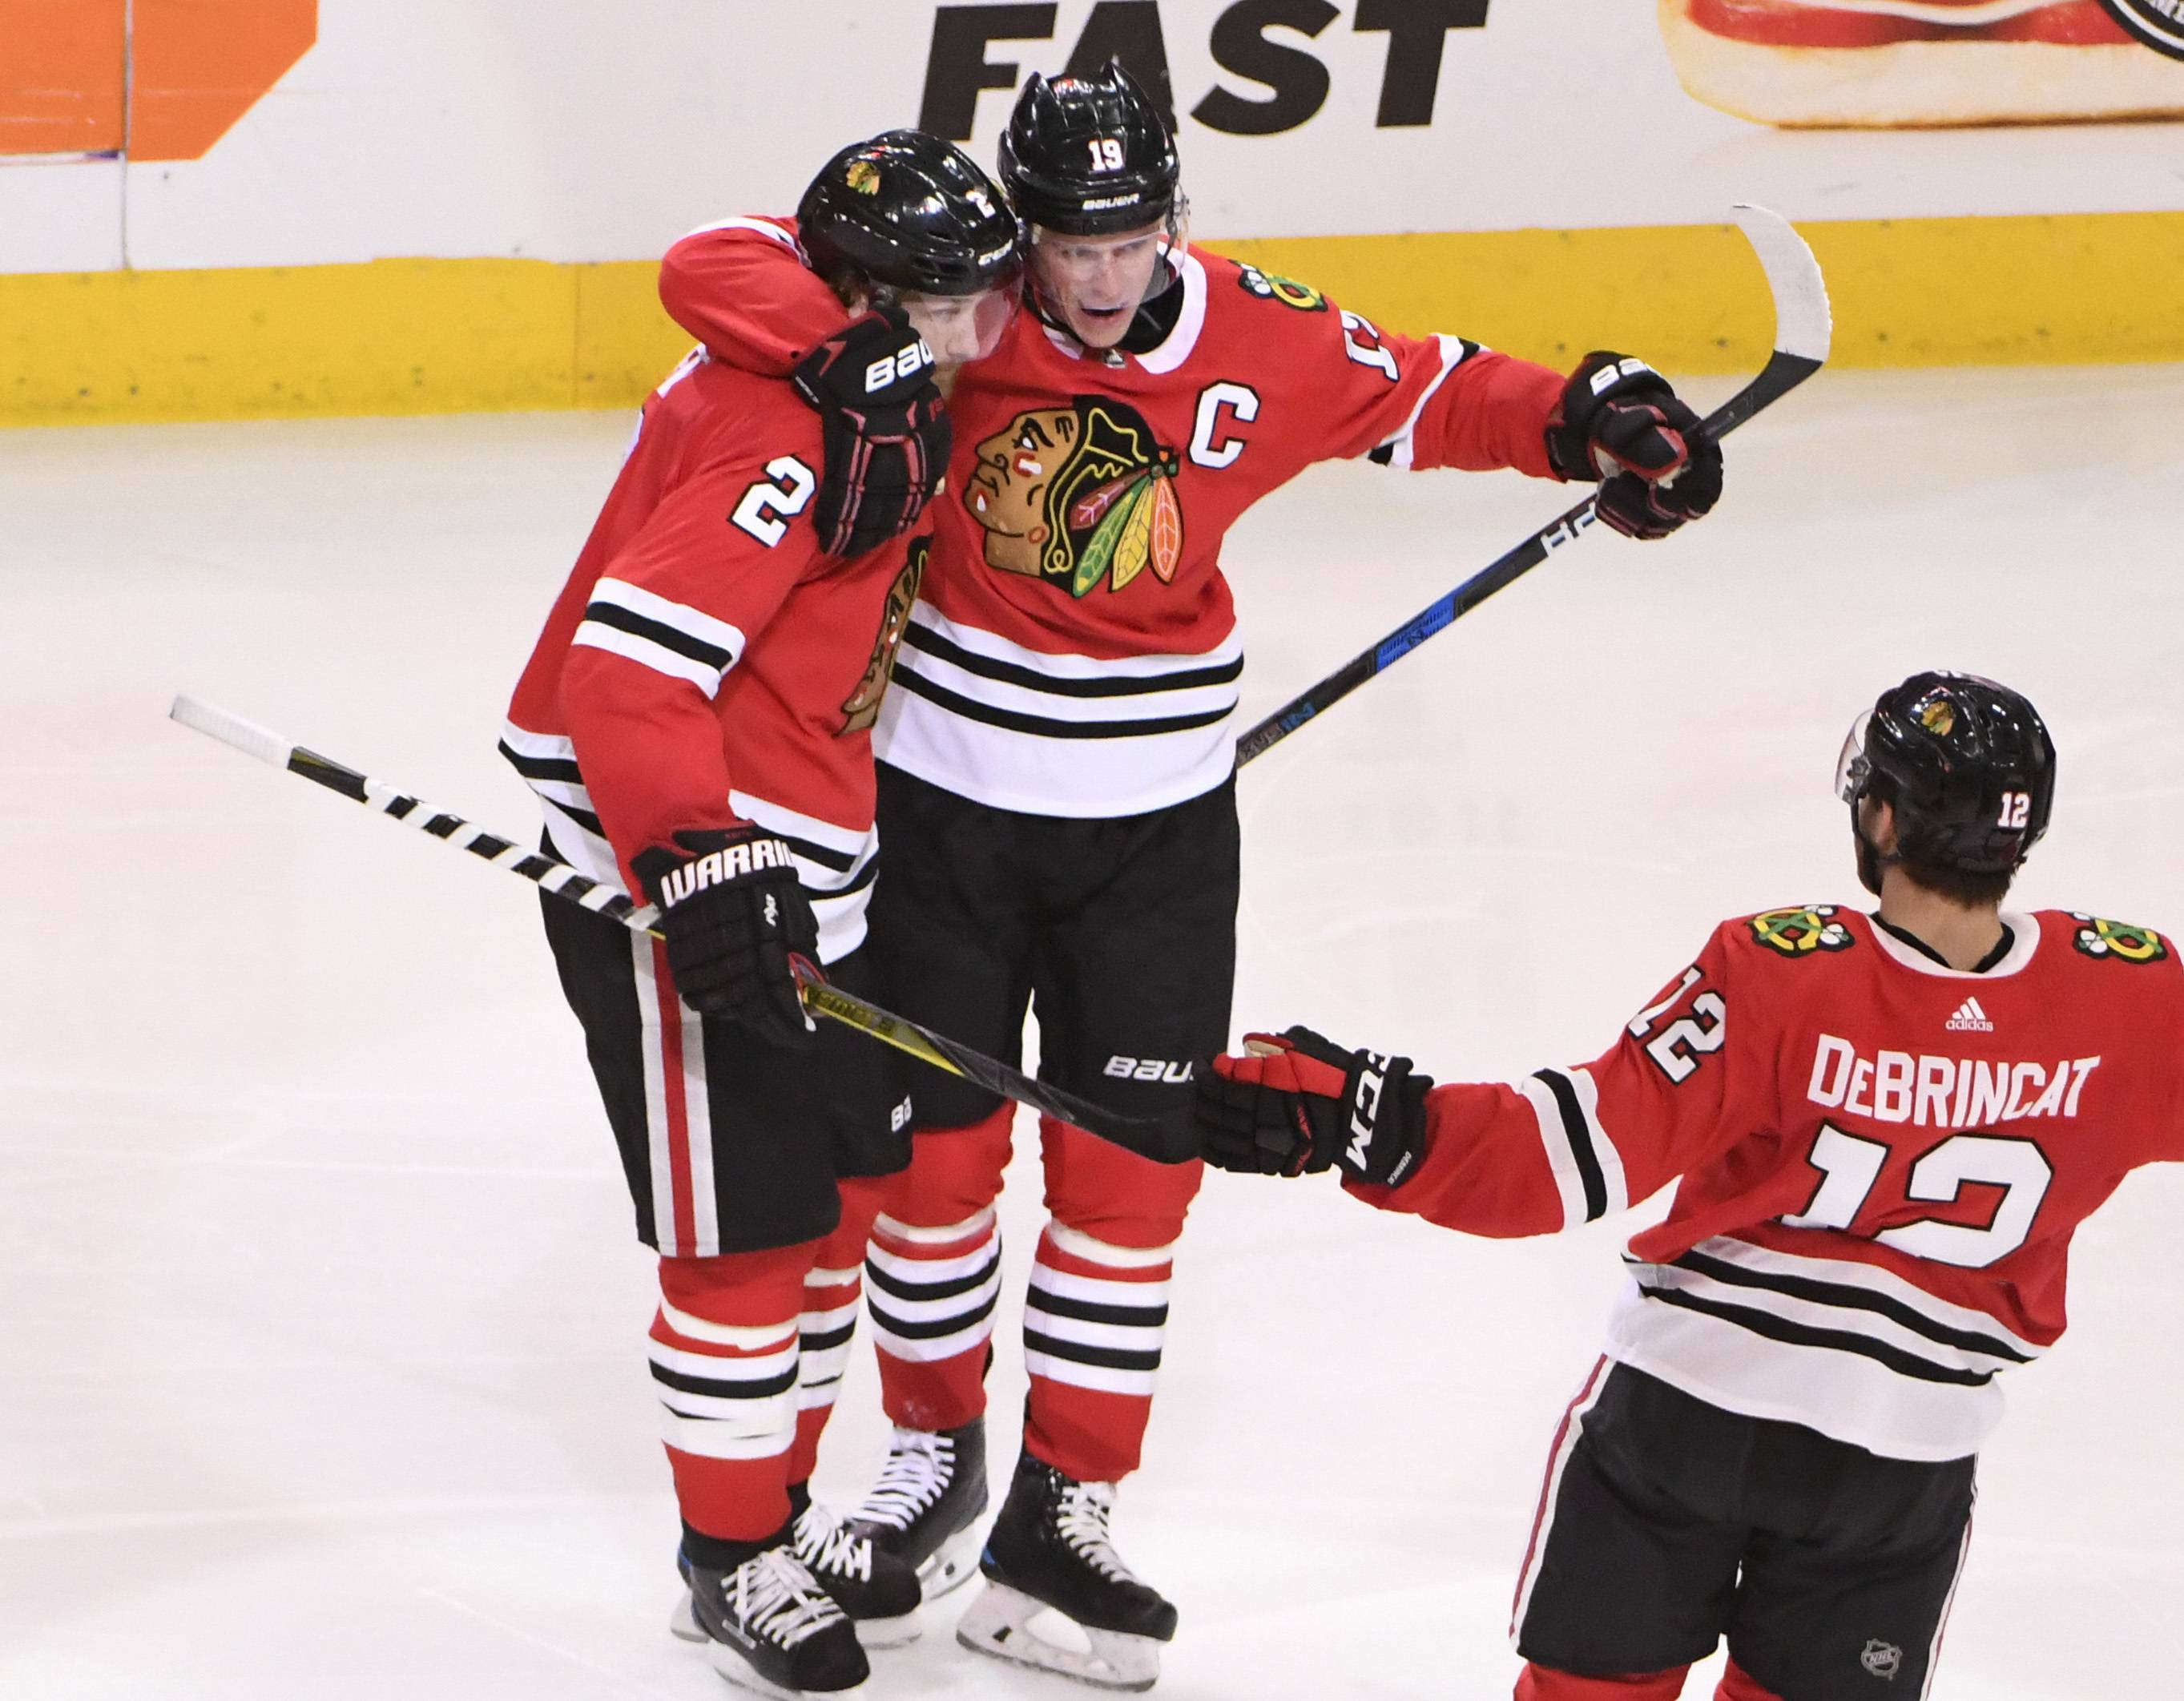 Chicago Blackhawks defenseman Duncan Keith (2) celebrates his goal against the Anaheim Ducks with center Jonathan Toews (19) and right wing Alex DeBrincat (12) during the second period of an NHL hockey game Thursday, Feb. 15, 2018, in Chicago. (AP Photo/David Banks)